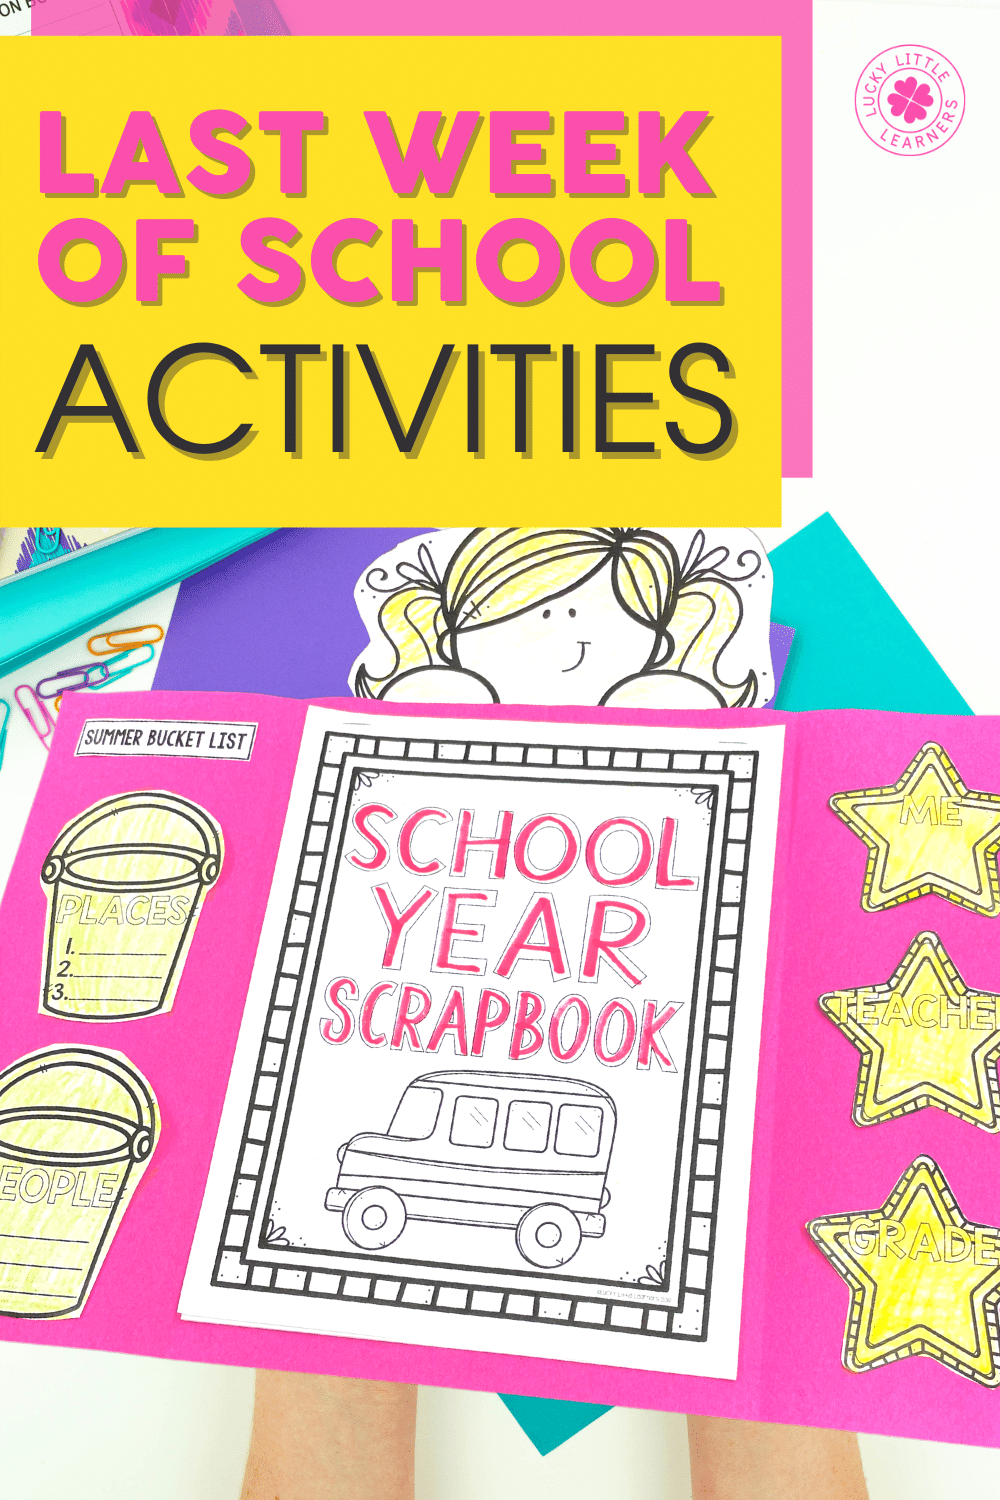 school year scrapbook for the last week of 1st or 2nd grade